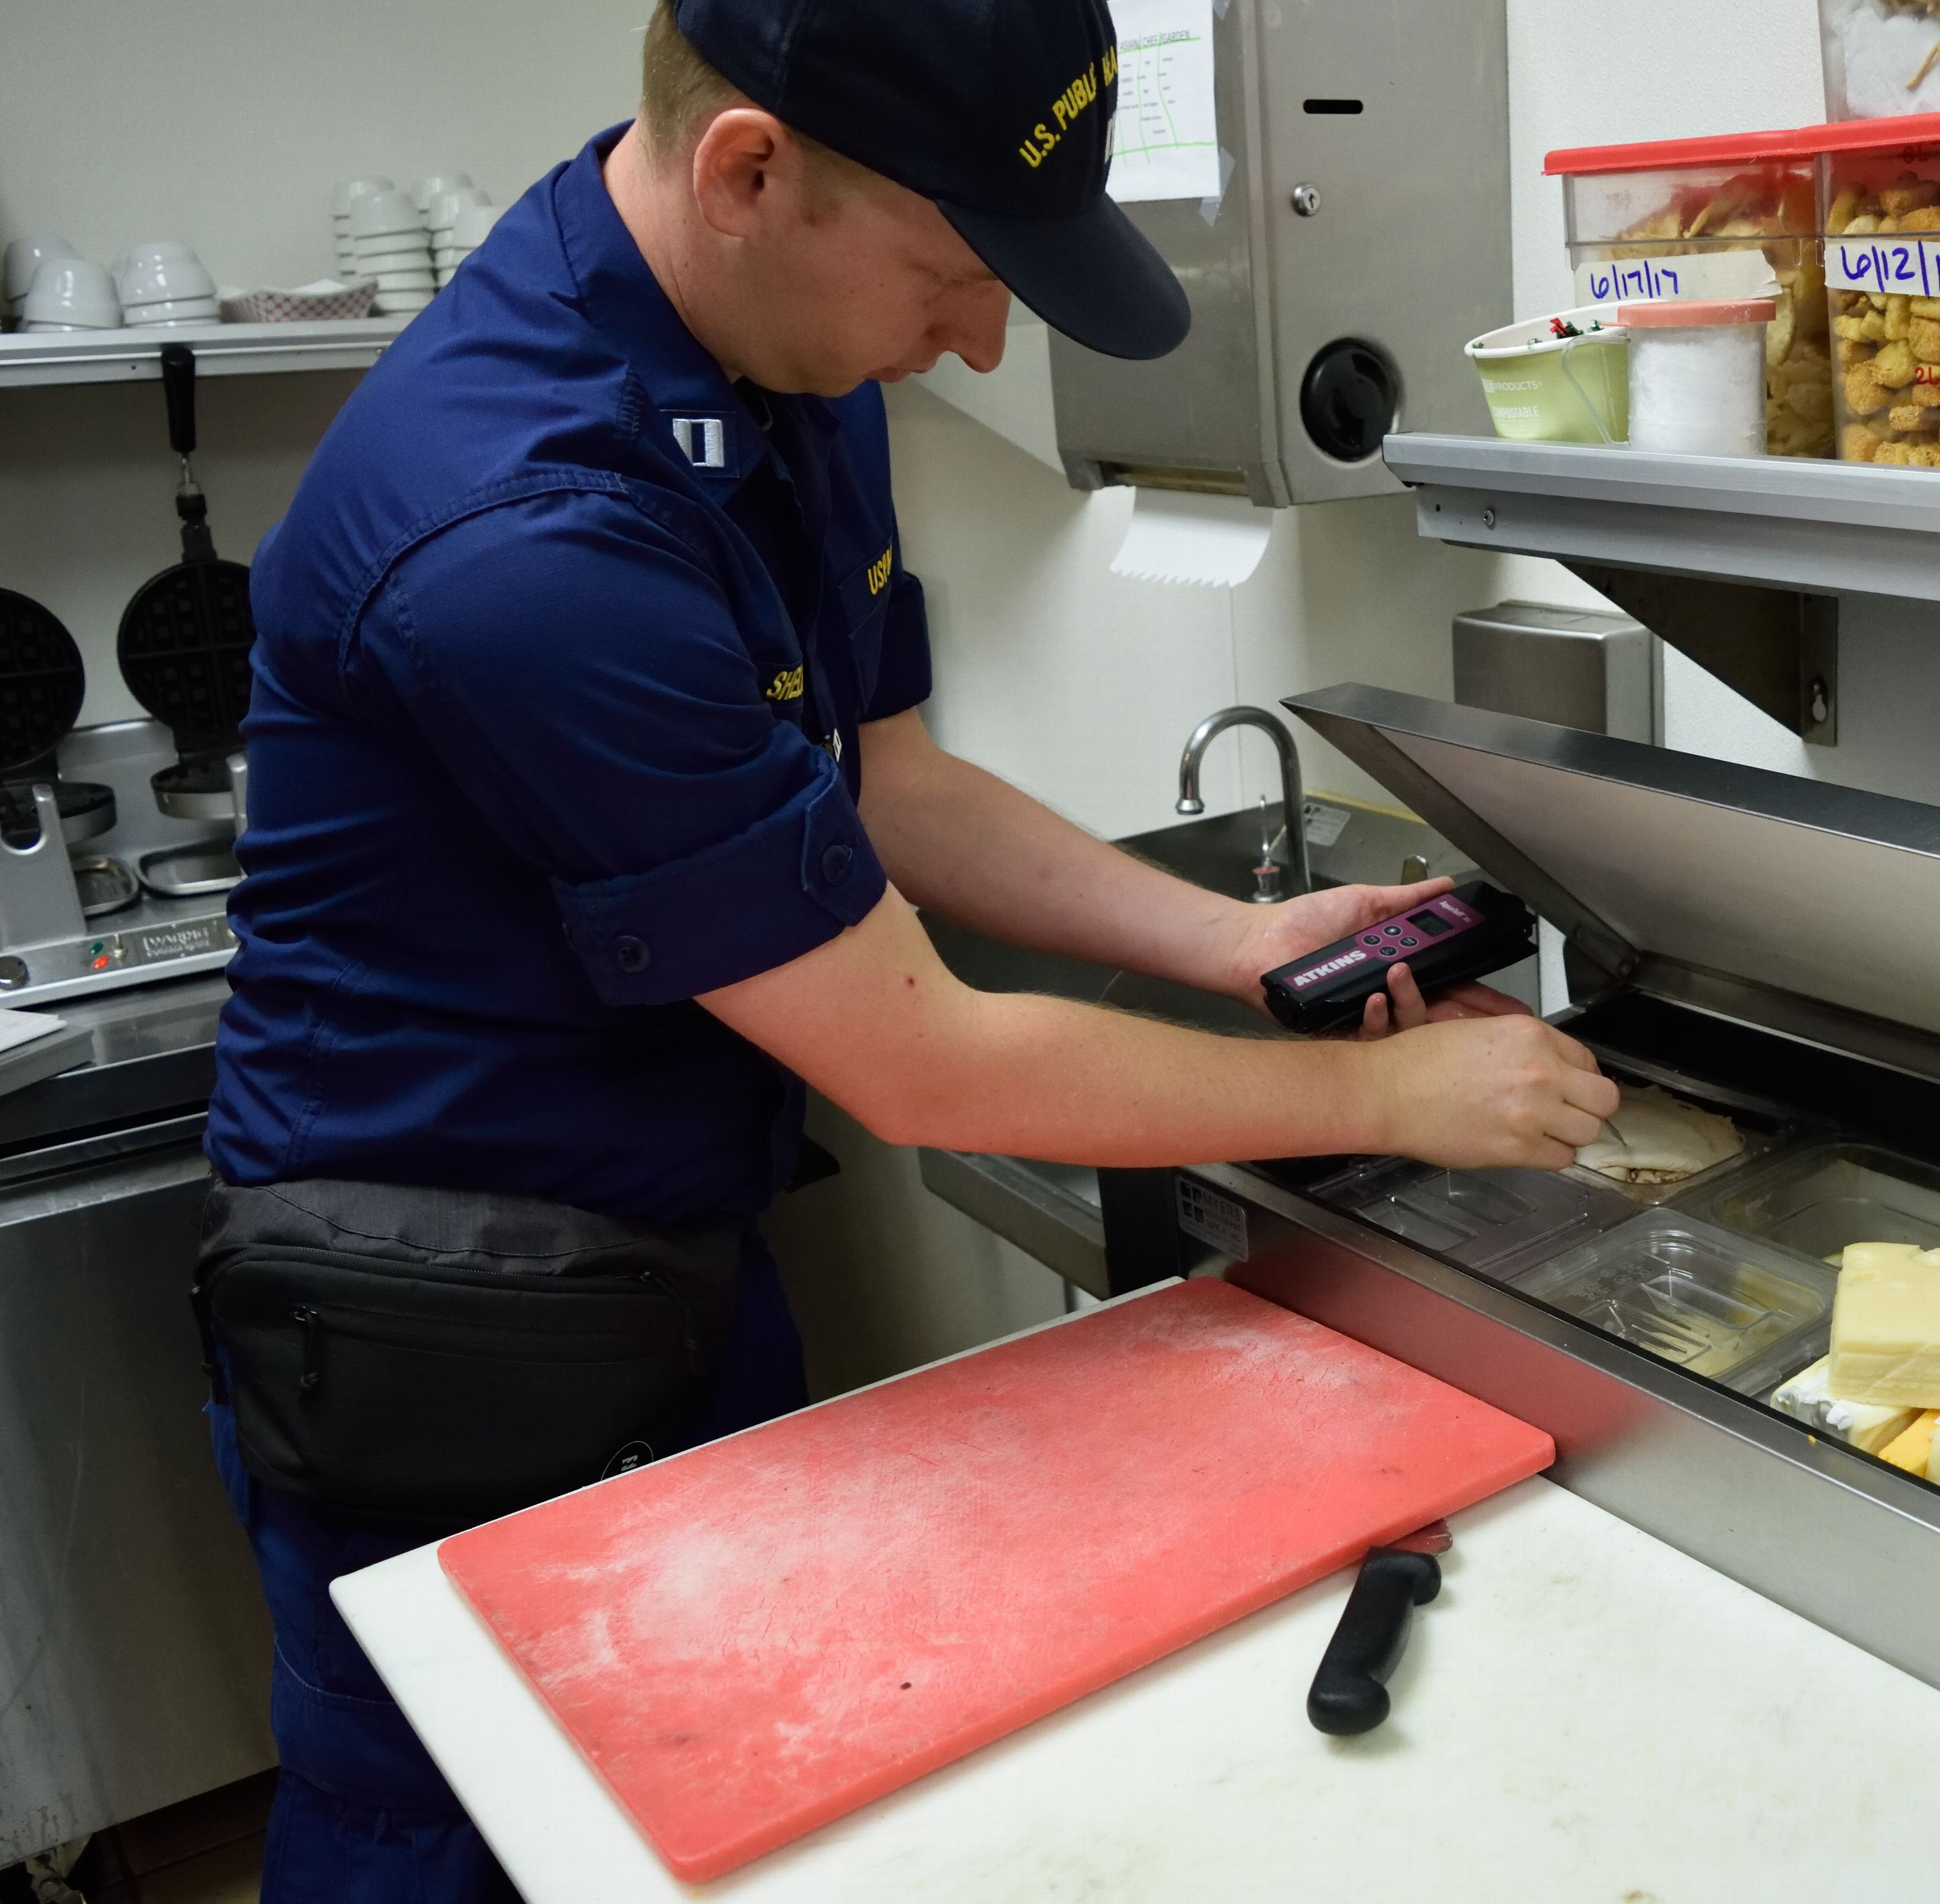 PHS Officer testing food temperatures